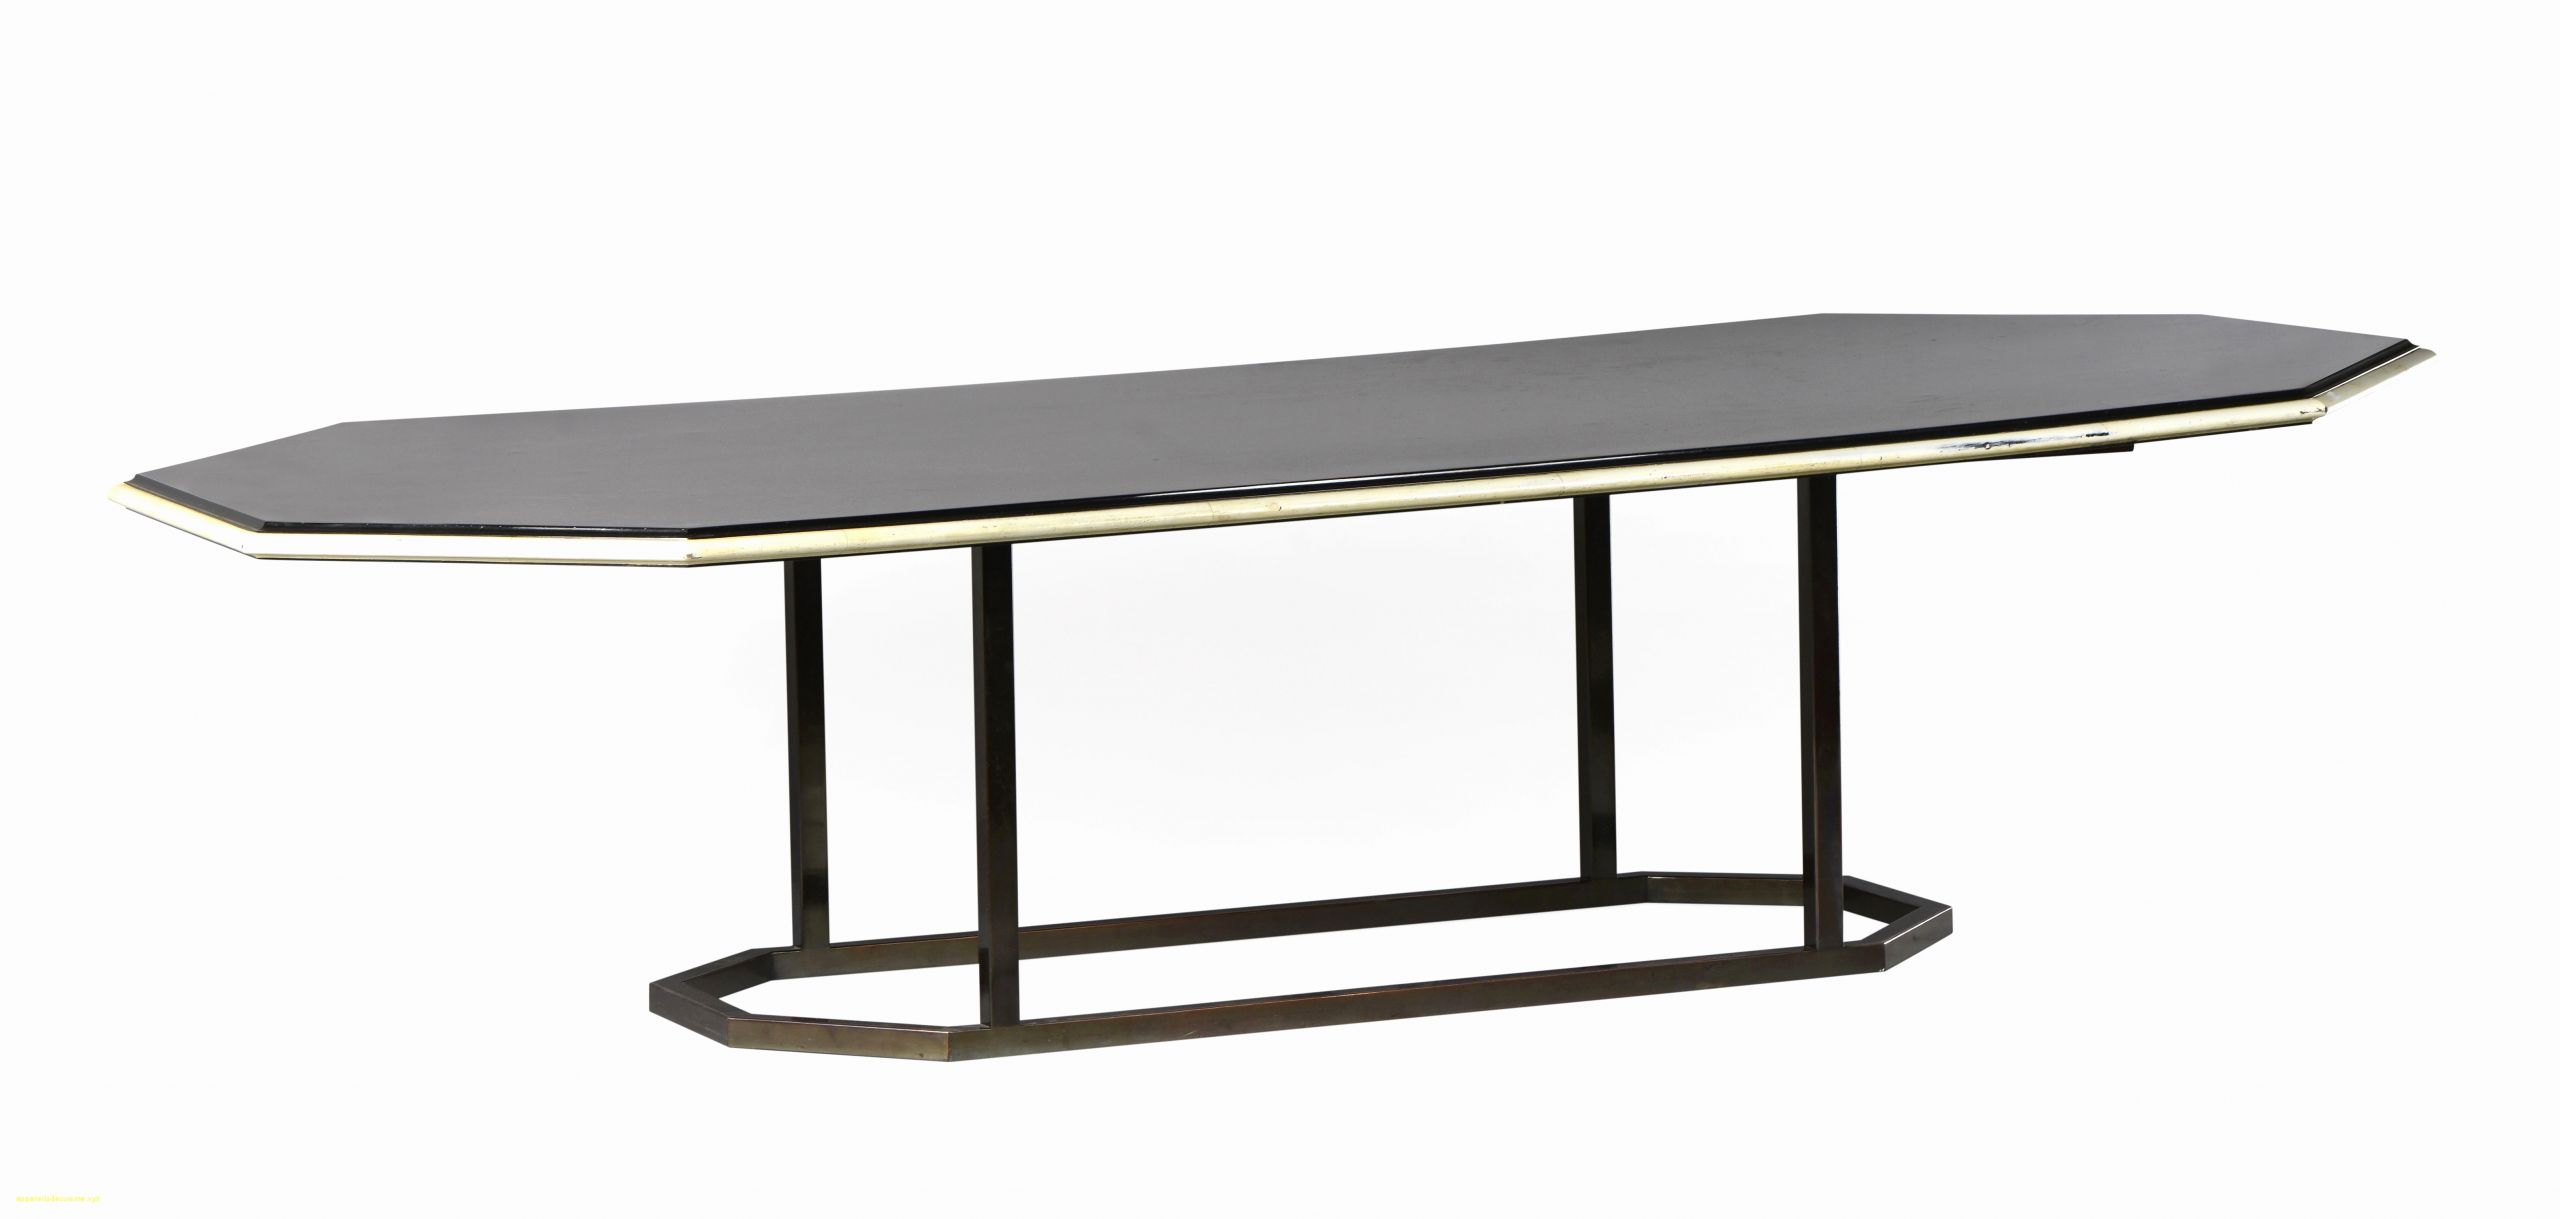 table carre extensible impressionnant fox table manger extensible 8 personnes 180 260x94 cm d cor pin avec of table carre extensible